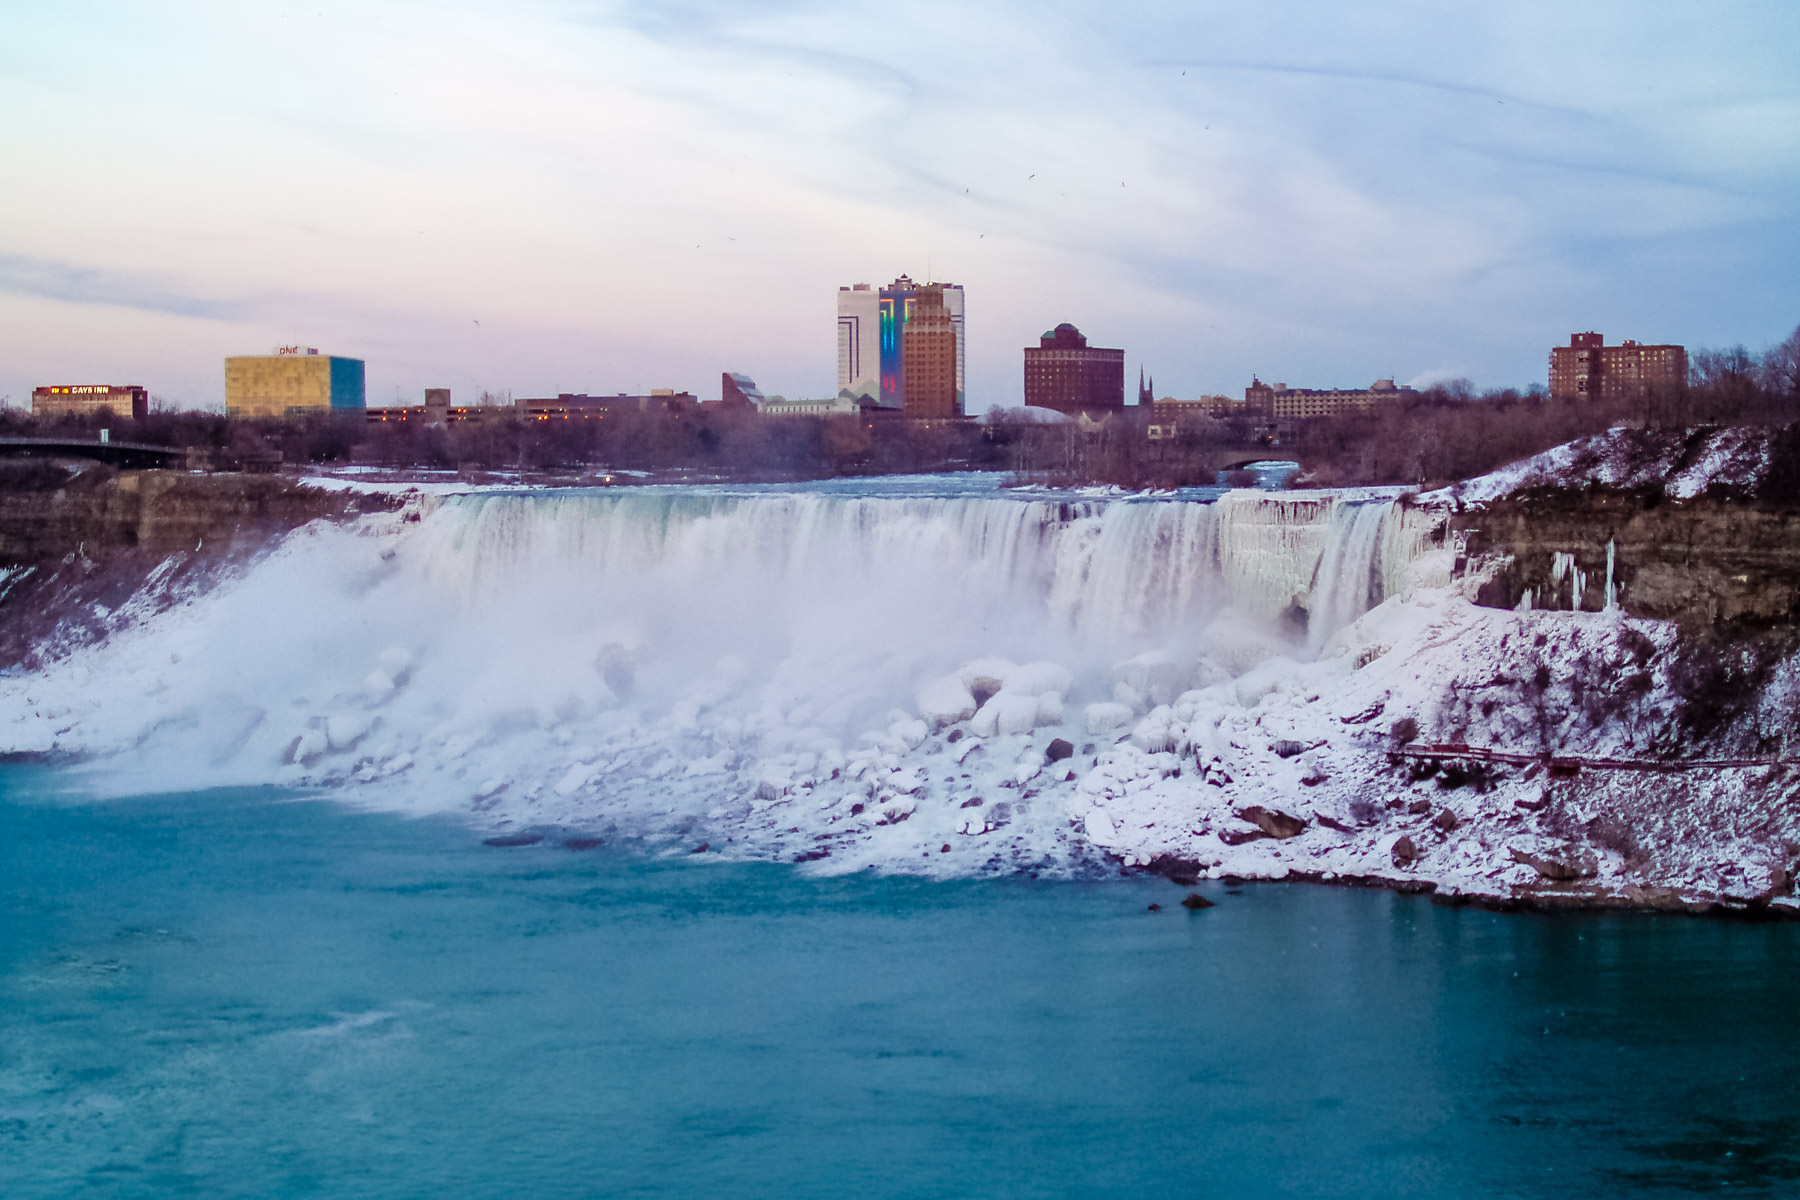 The American Falls at Niagara Falls as seen from the Canadian side of the border on a cold winter evening.